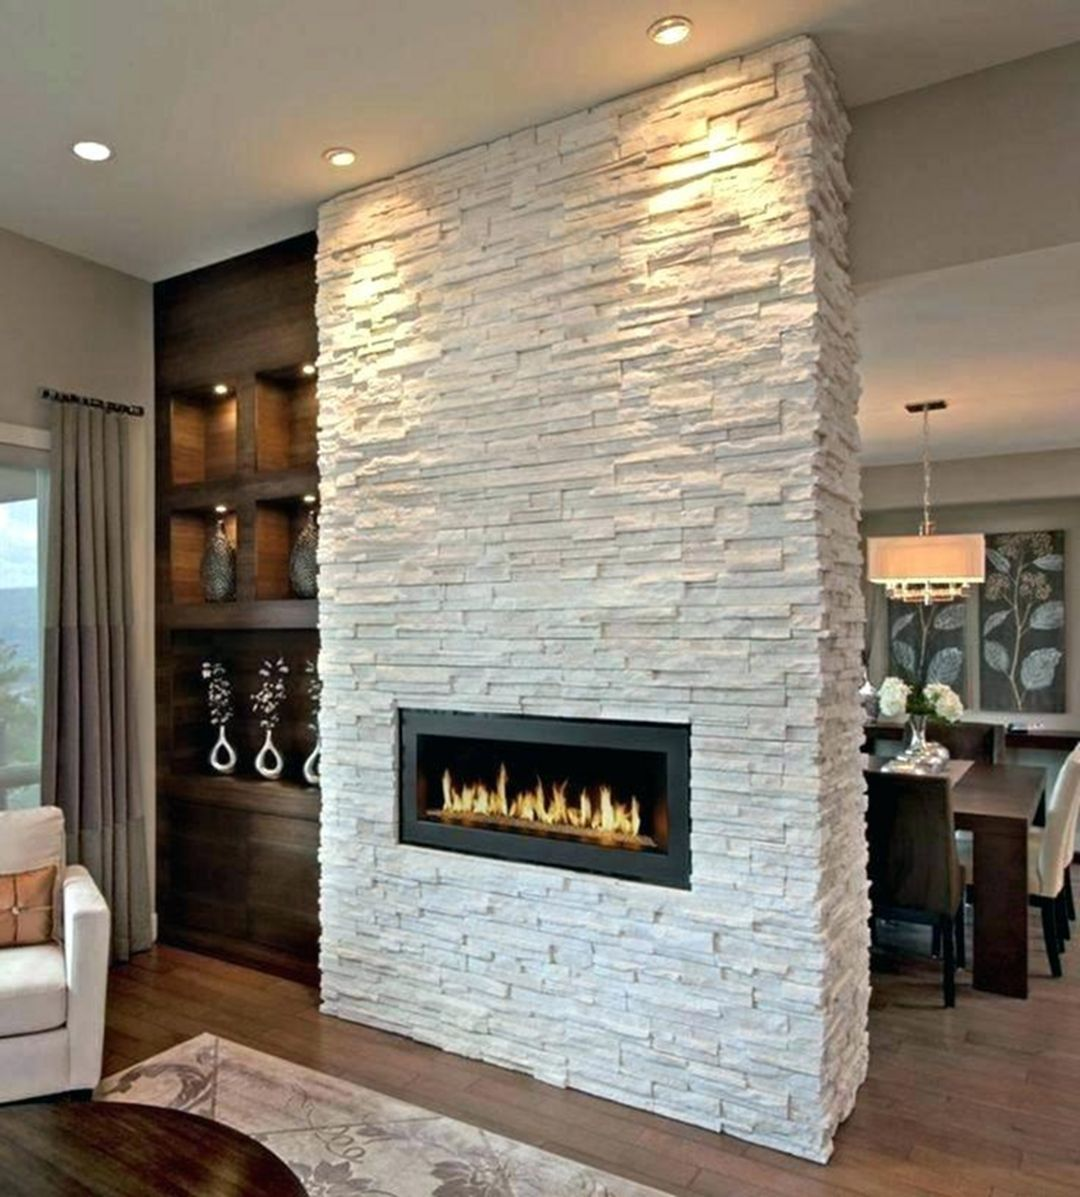 15 Awesome Wall Stone Ideas For Best Home Interior Design Modern Stone Fireplace Stacked Stone Fireplaces White Stone Fireplaces